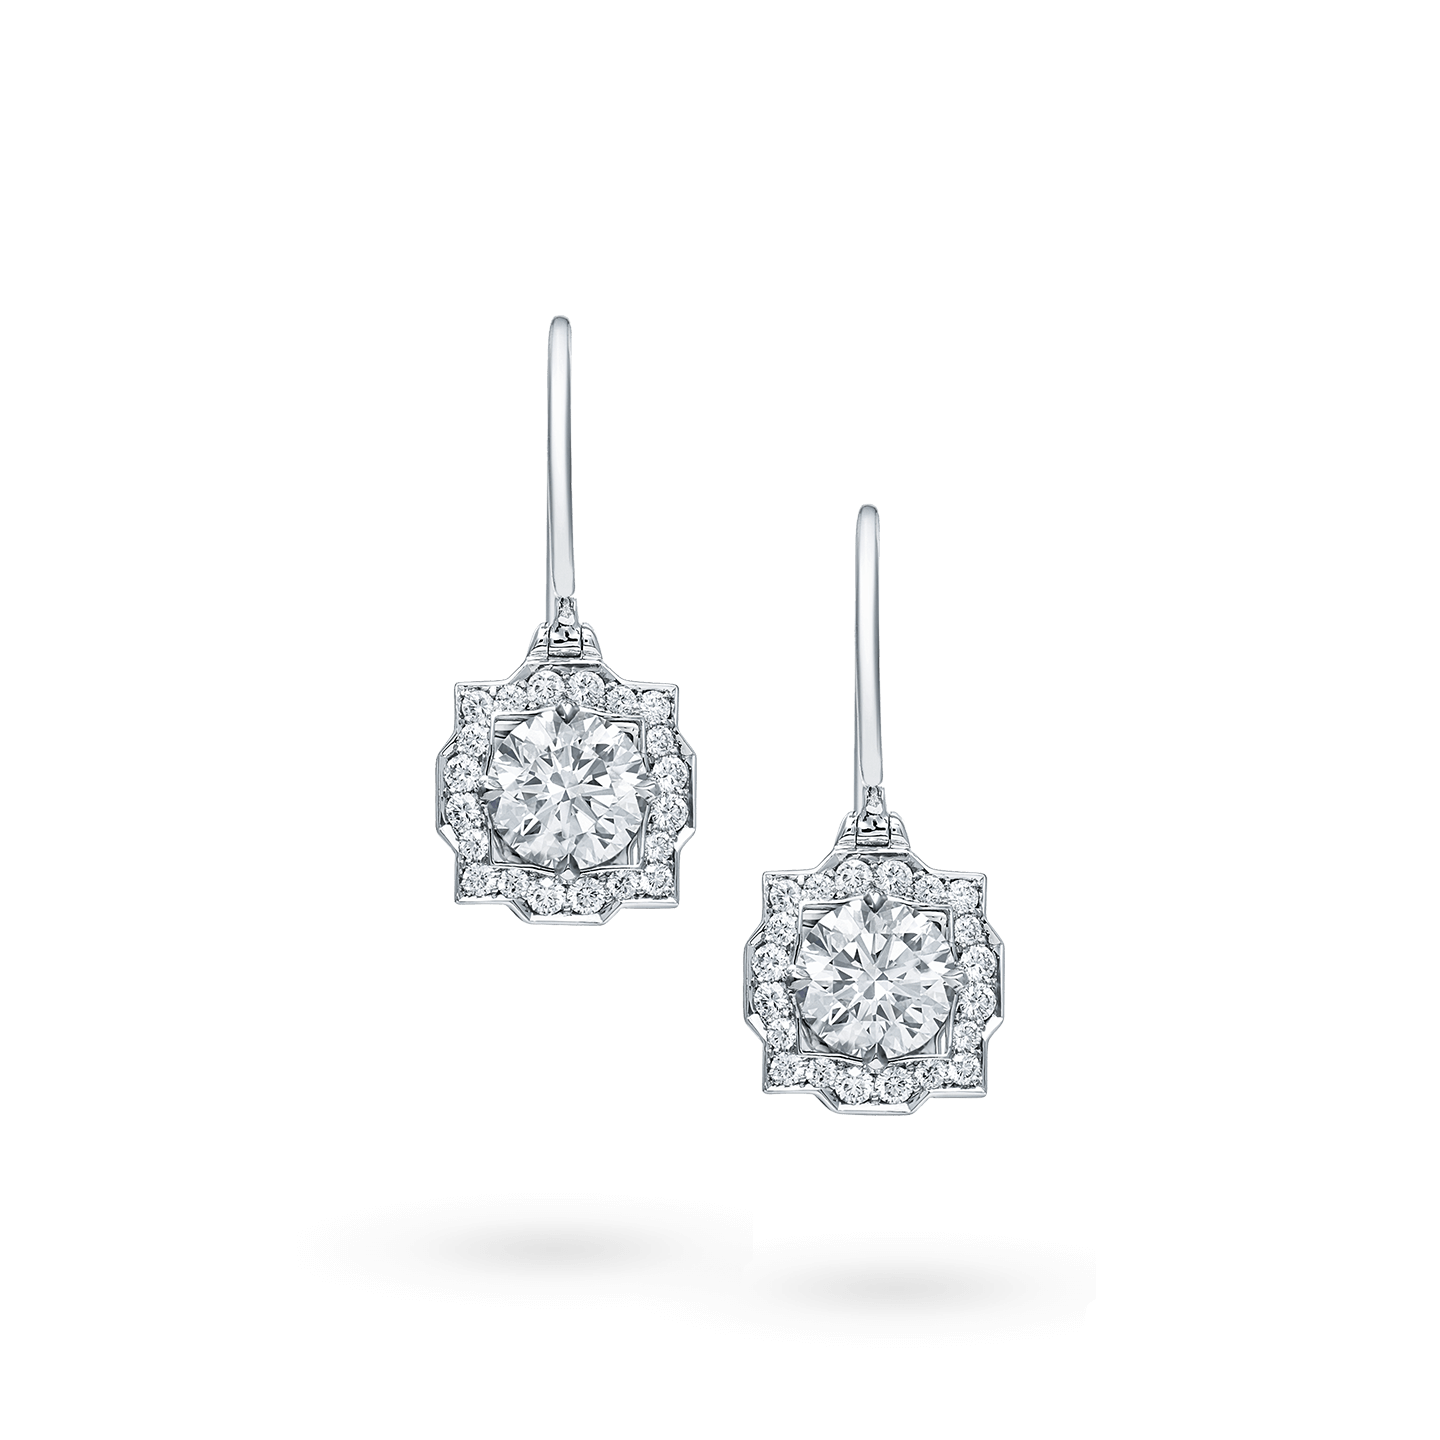 Belle Diamond Earstuds on Wires, Product Image 1